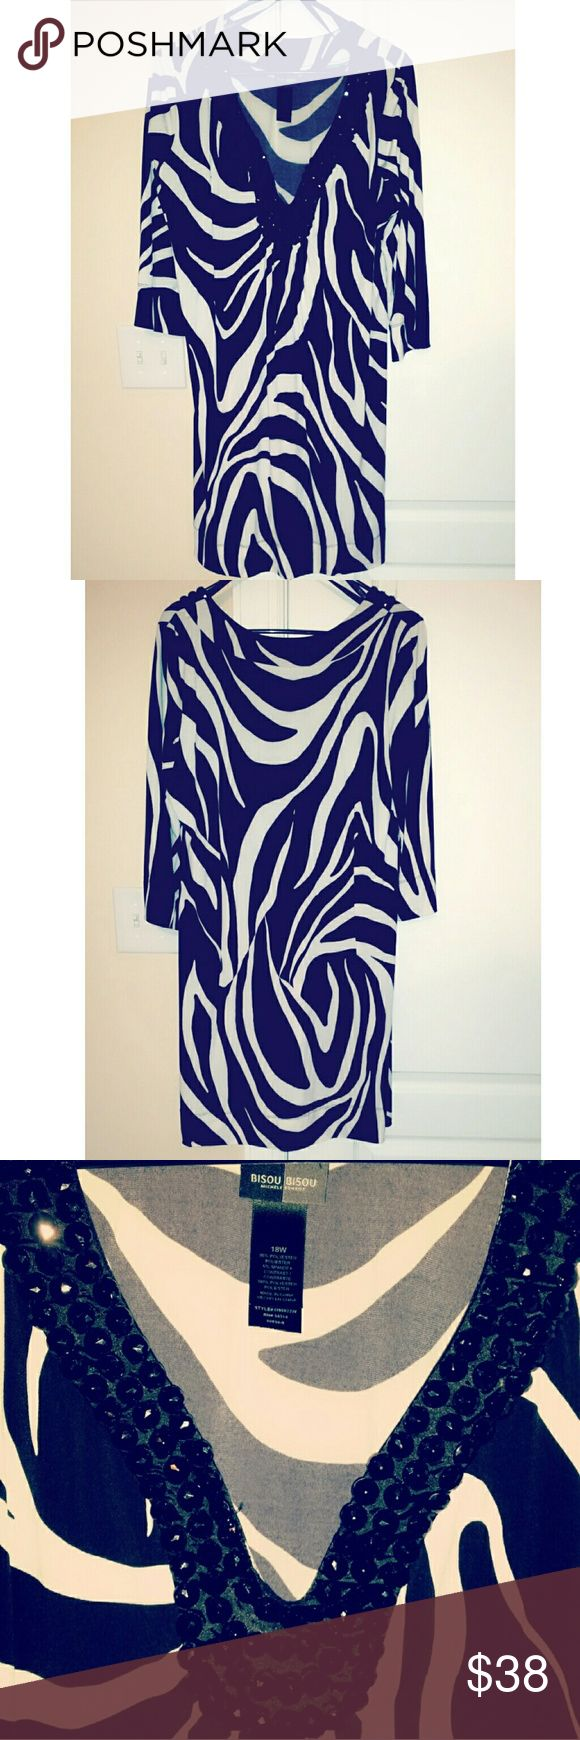 """Bisou Bisou 18w Zebra Print Dress Make a statement this holiday season with this gorgeous size 18w Bisou Bisou zebra print dress. Three quarter length sleeves (17.5"""" in lenght) with a beautiful accented jeweled v-neckline.  Dress length is approximately 38"""". Excellent condition, smoke free, one cat home Bisou Bisou Dresses Midi"""